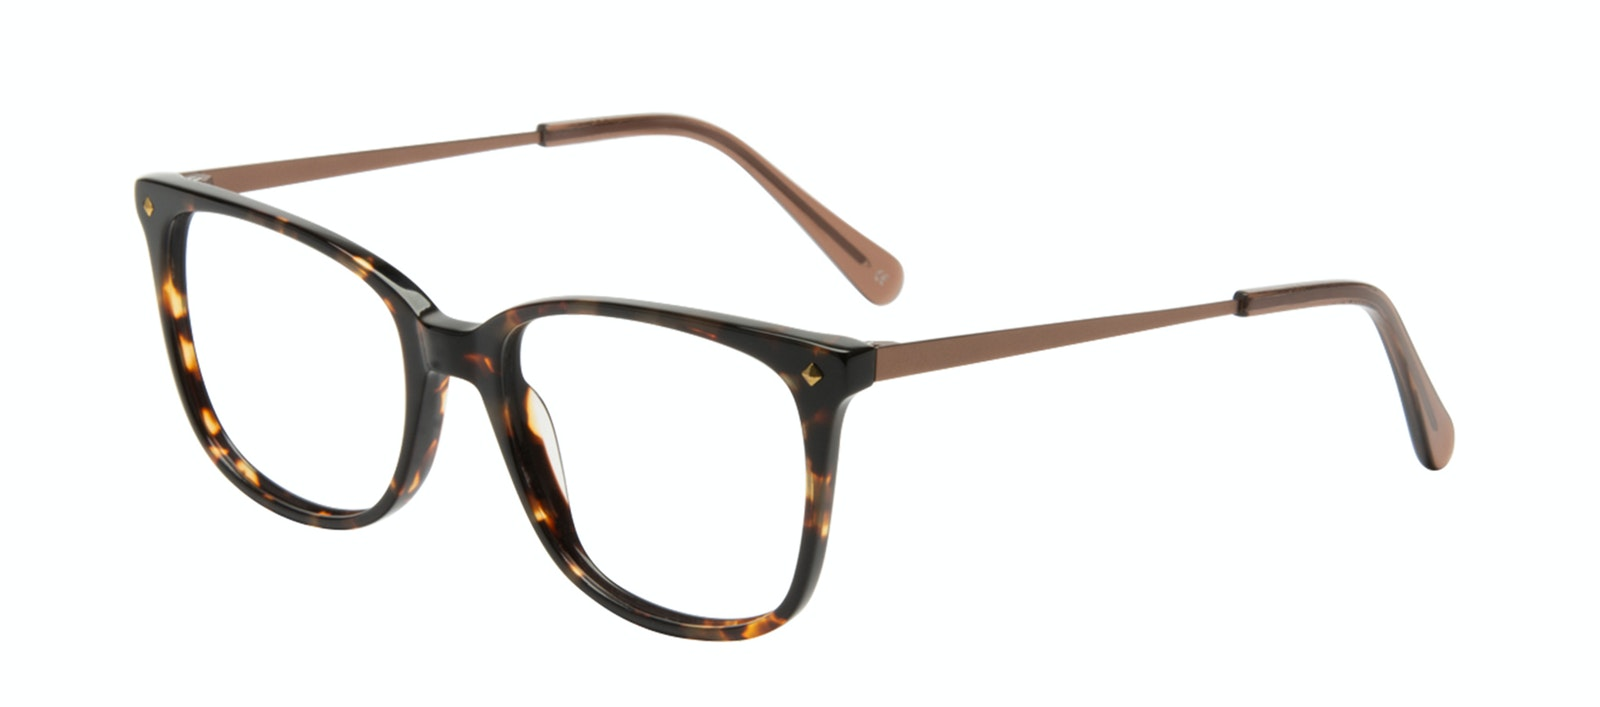 Affordable Fashion Glasses Rectangle Square Eyeglasses Women Refine Tortoise Tilt